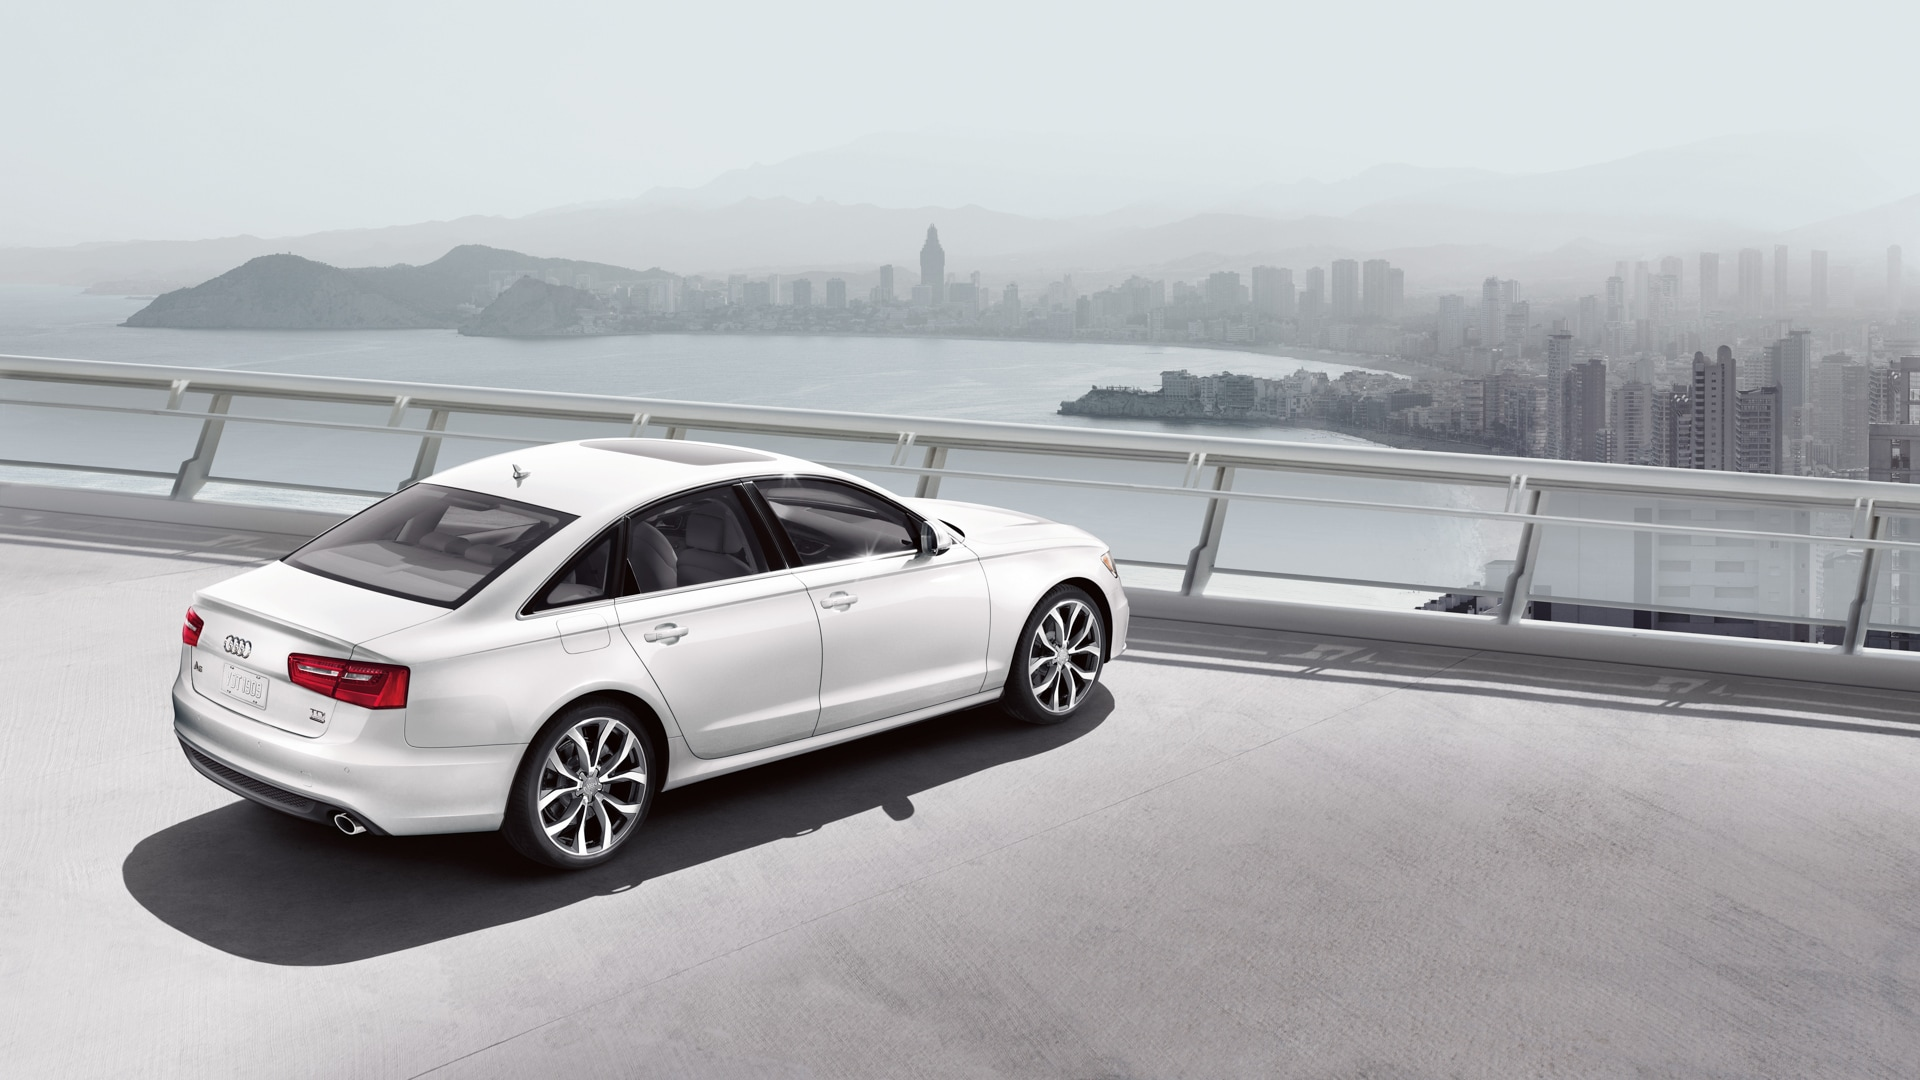 lease specials on 2015 audi a6 near los angeles audi financing